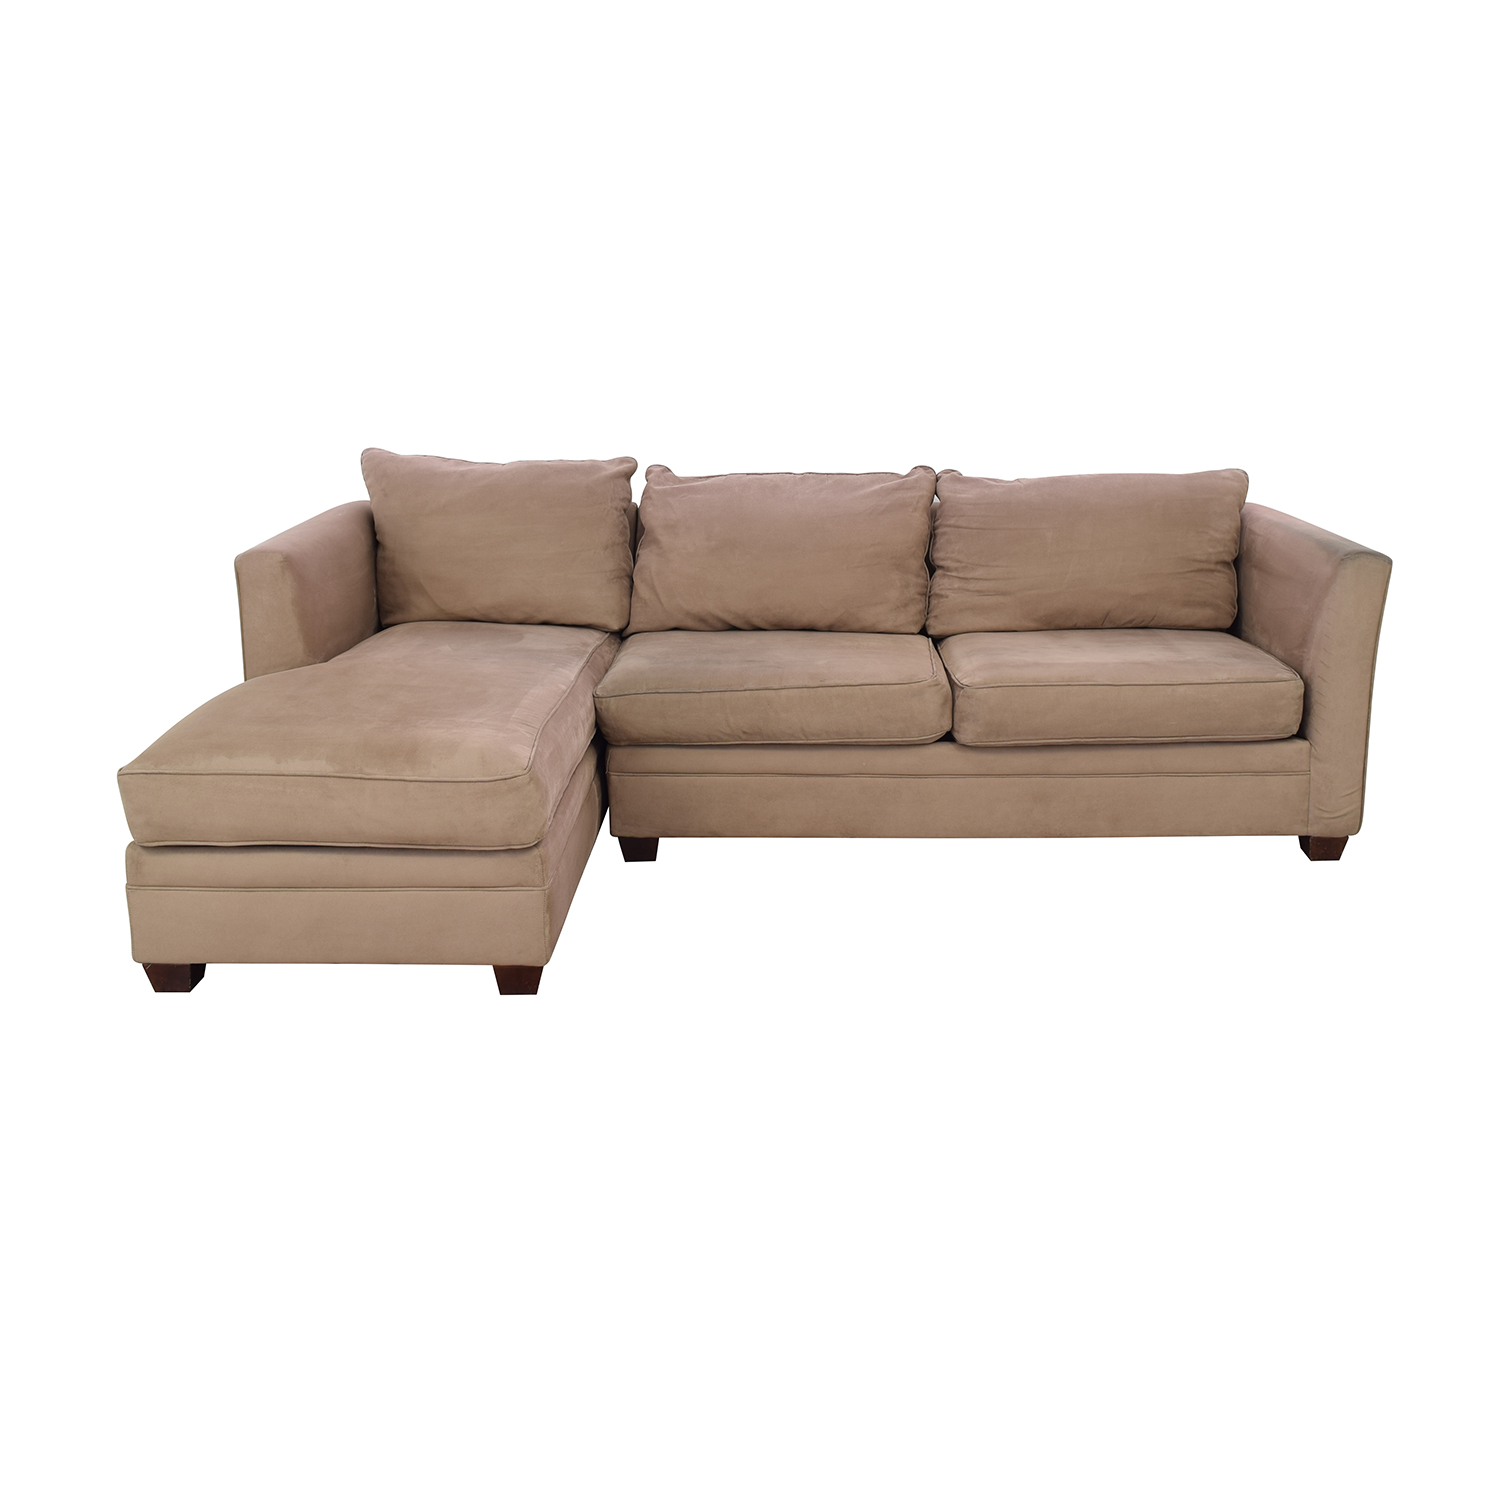 55% OFF - Bauhaus Furniture Bauhaus Chaise Sectional Sofa / Sofas